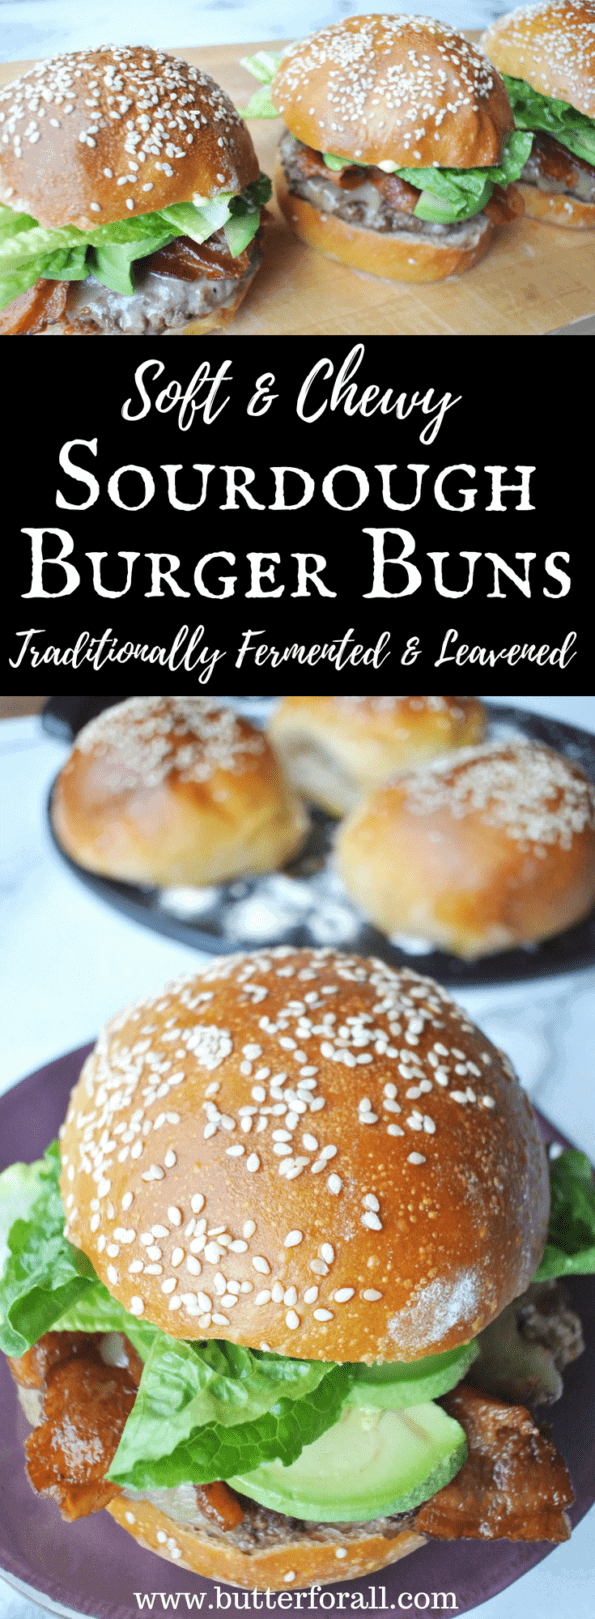 Soft chewy sourdough burger buns that are traditionally fermented and leavened!